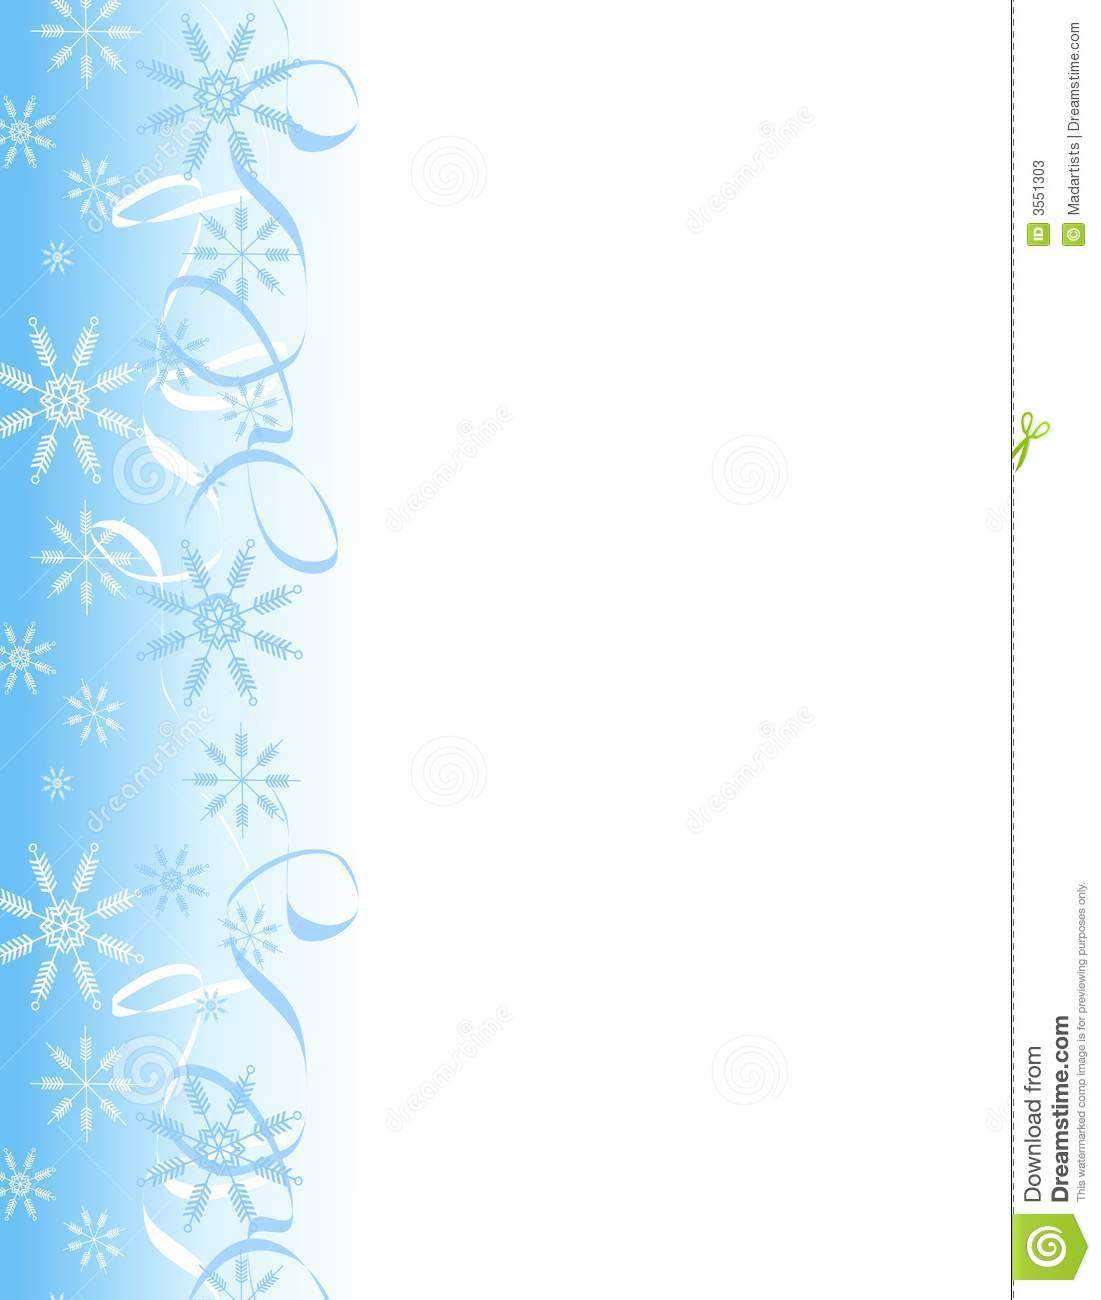 December clipart borders svg freeuse library December Borders Cliparts (106+ images in Collection) Page 1 svg freeuse library